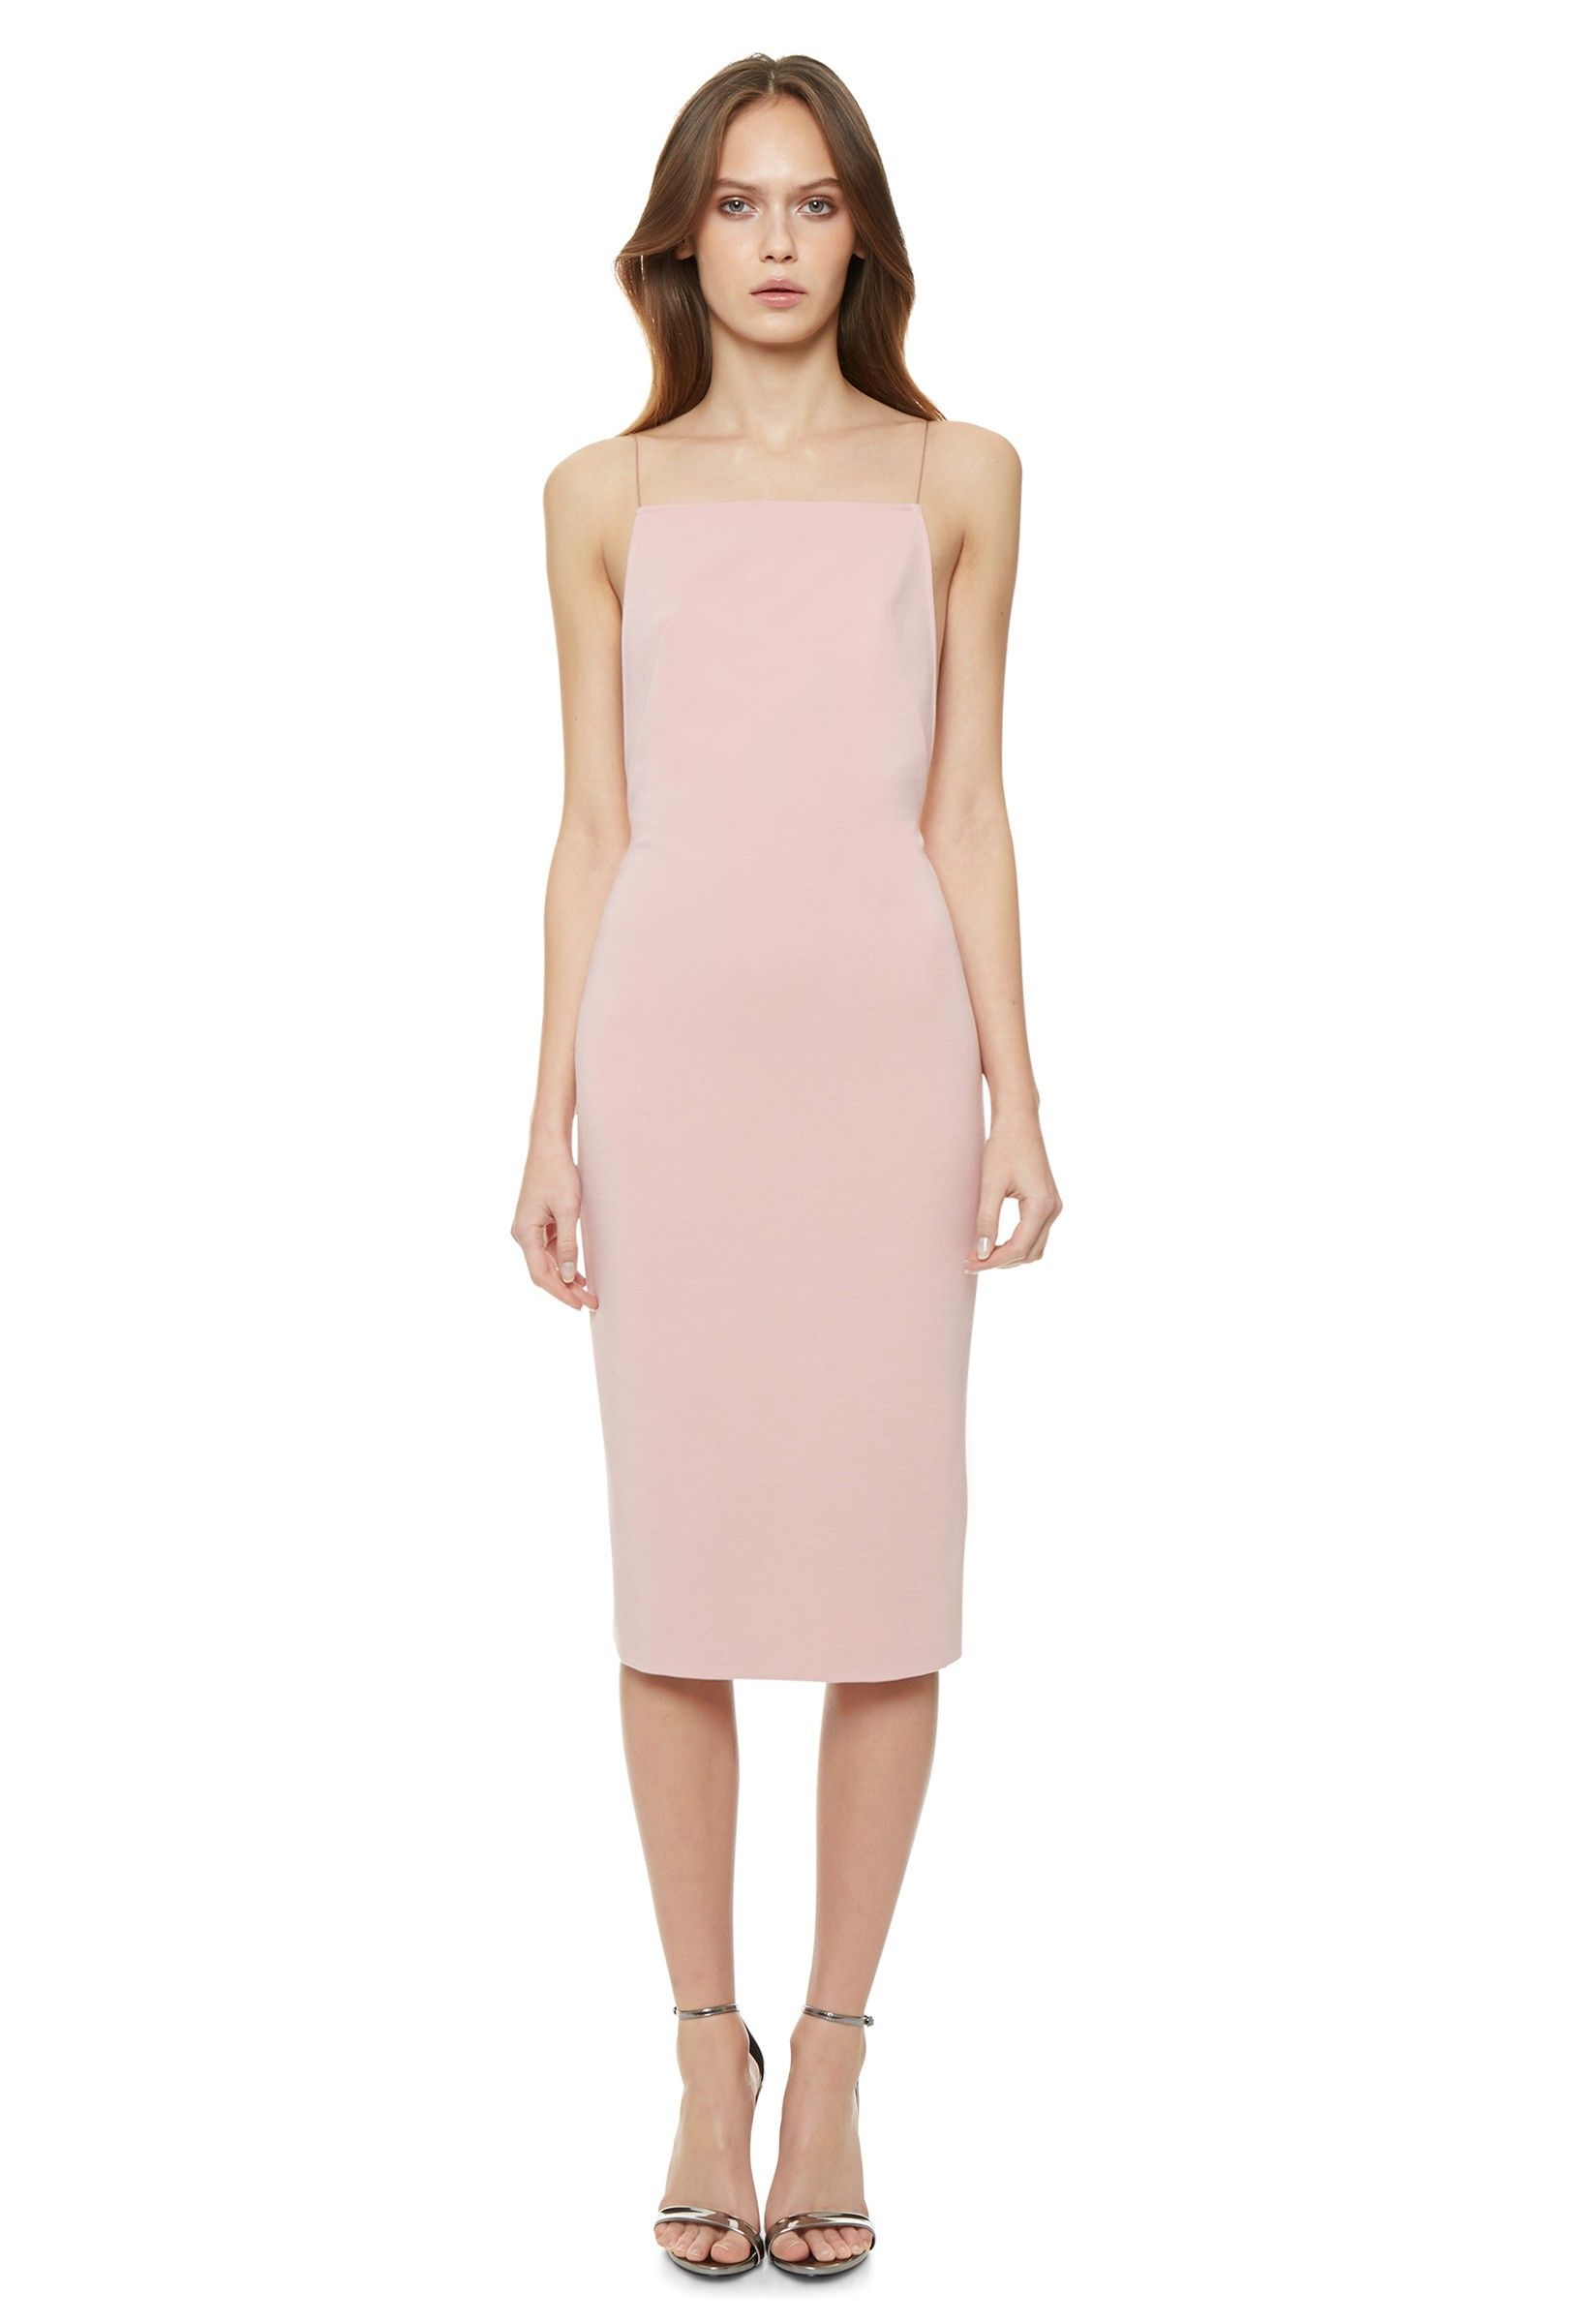 4dc04be79dd0 Image 3 of Cartney Backless Midi Dress with Shoestring Straps · Pale Pink ·  AQ AQ